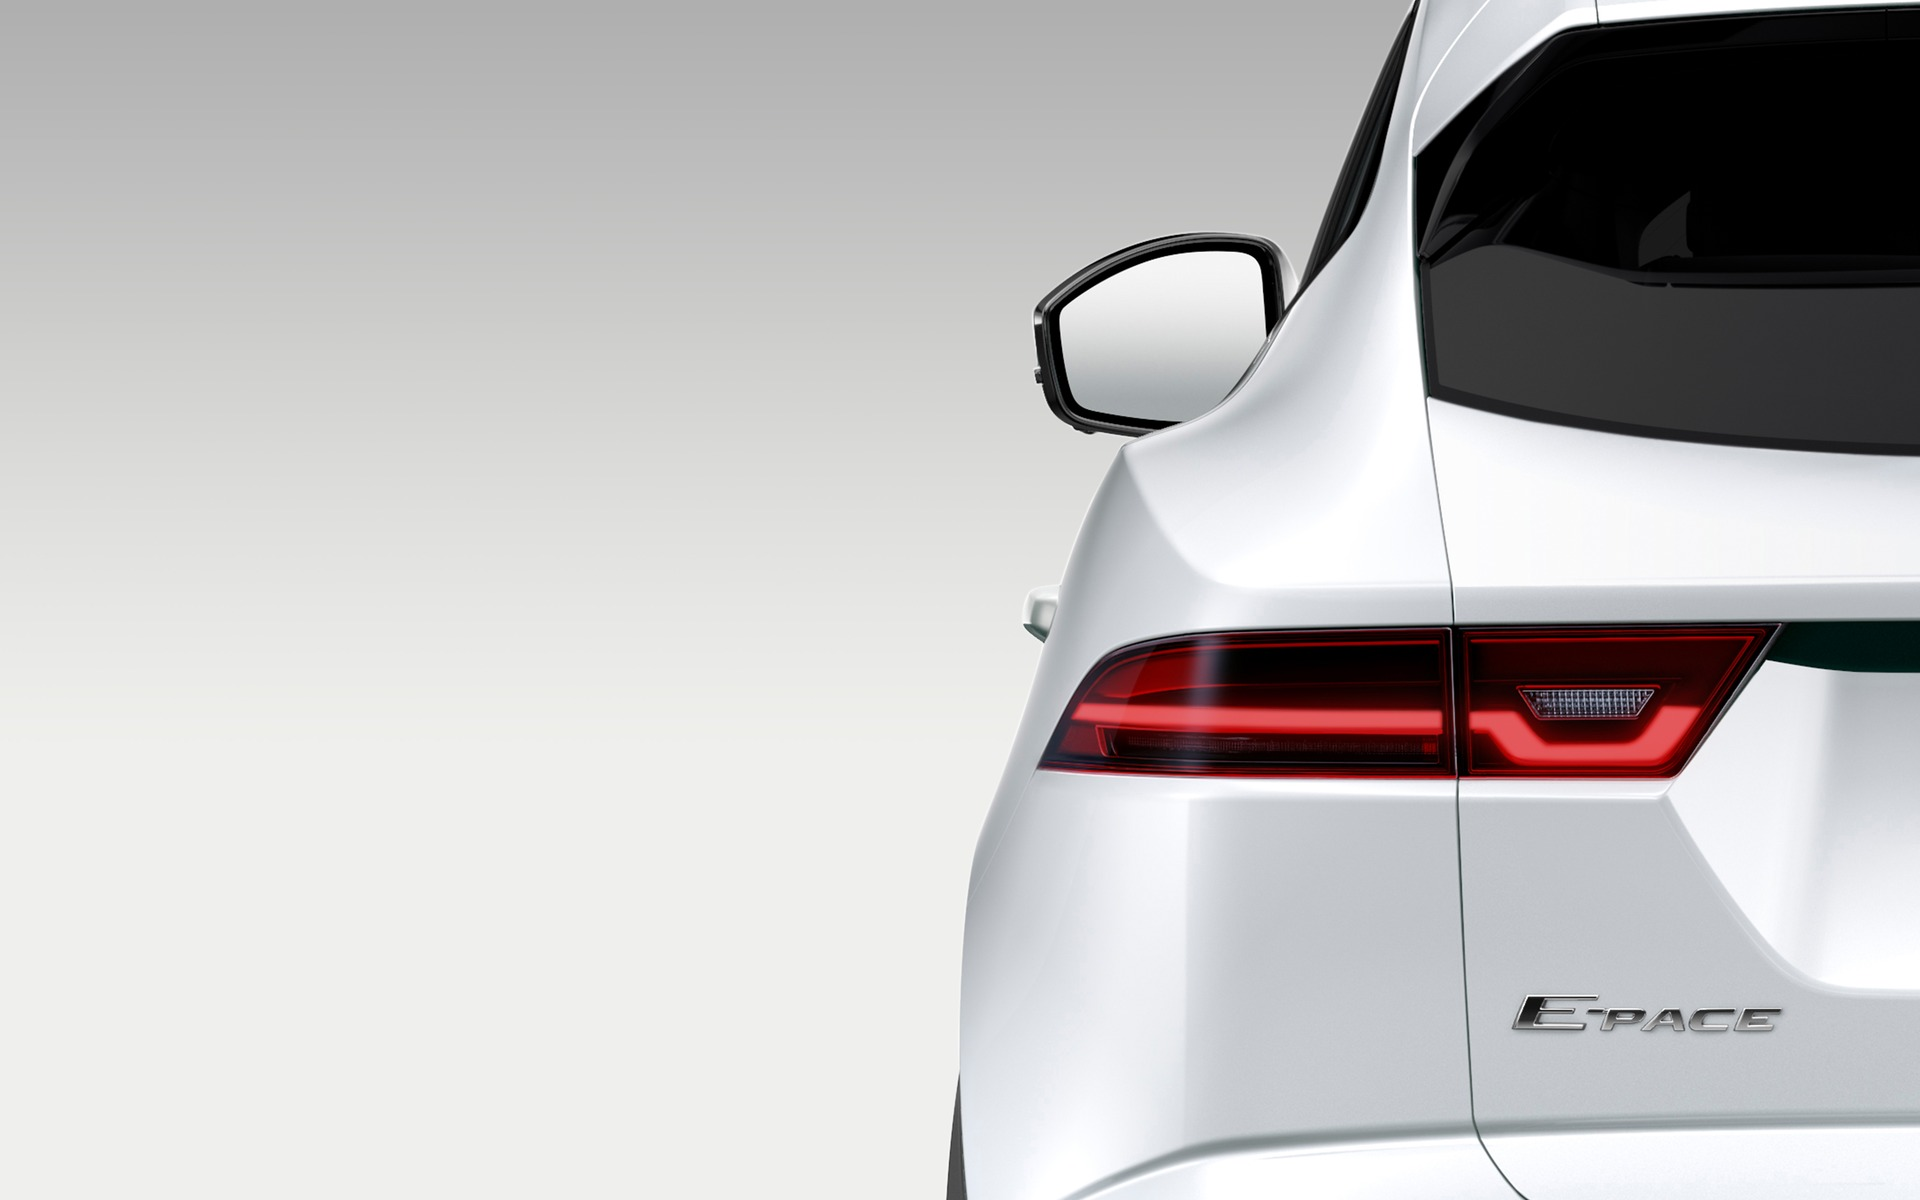 2018 Jaguar E-PACE to be Unveiled Next Month - The Car Guide